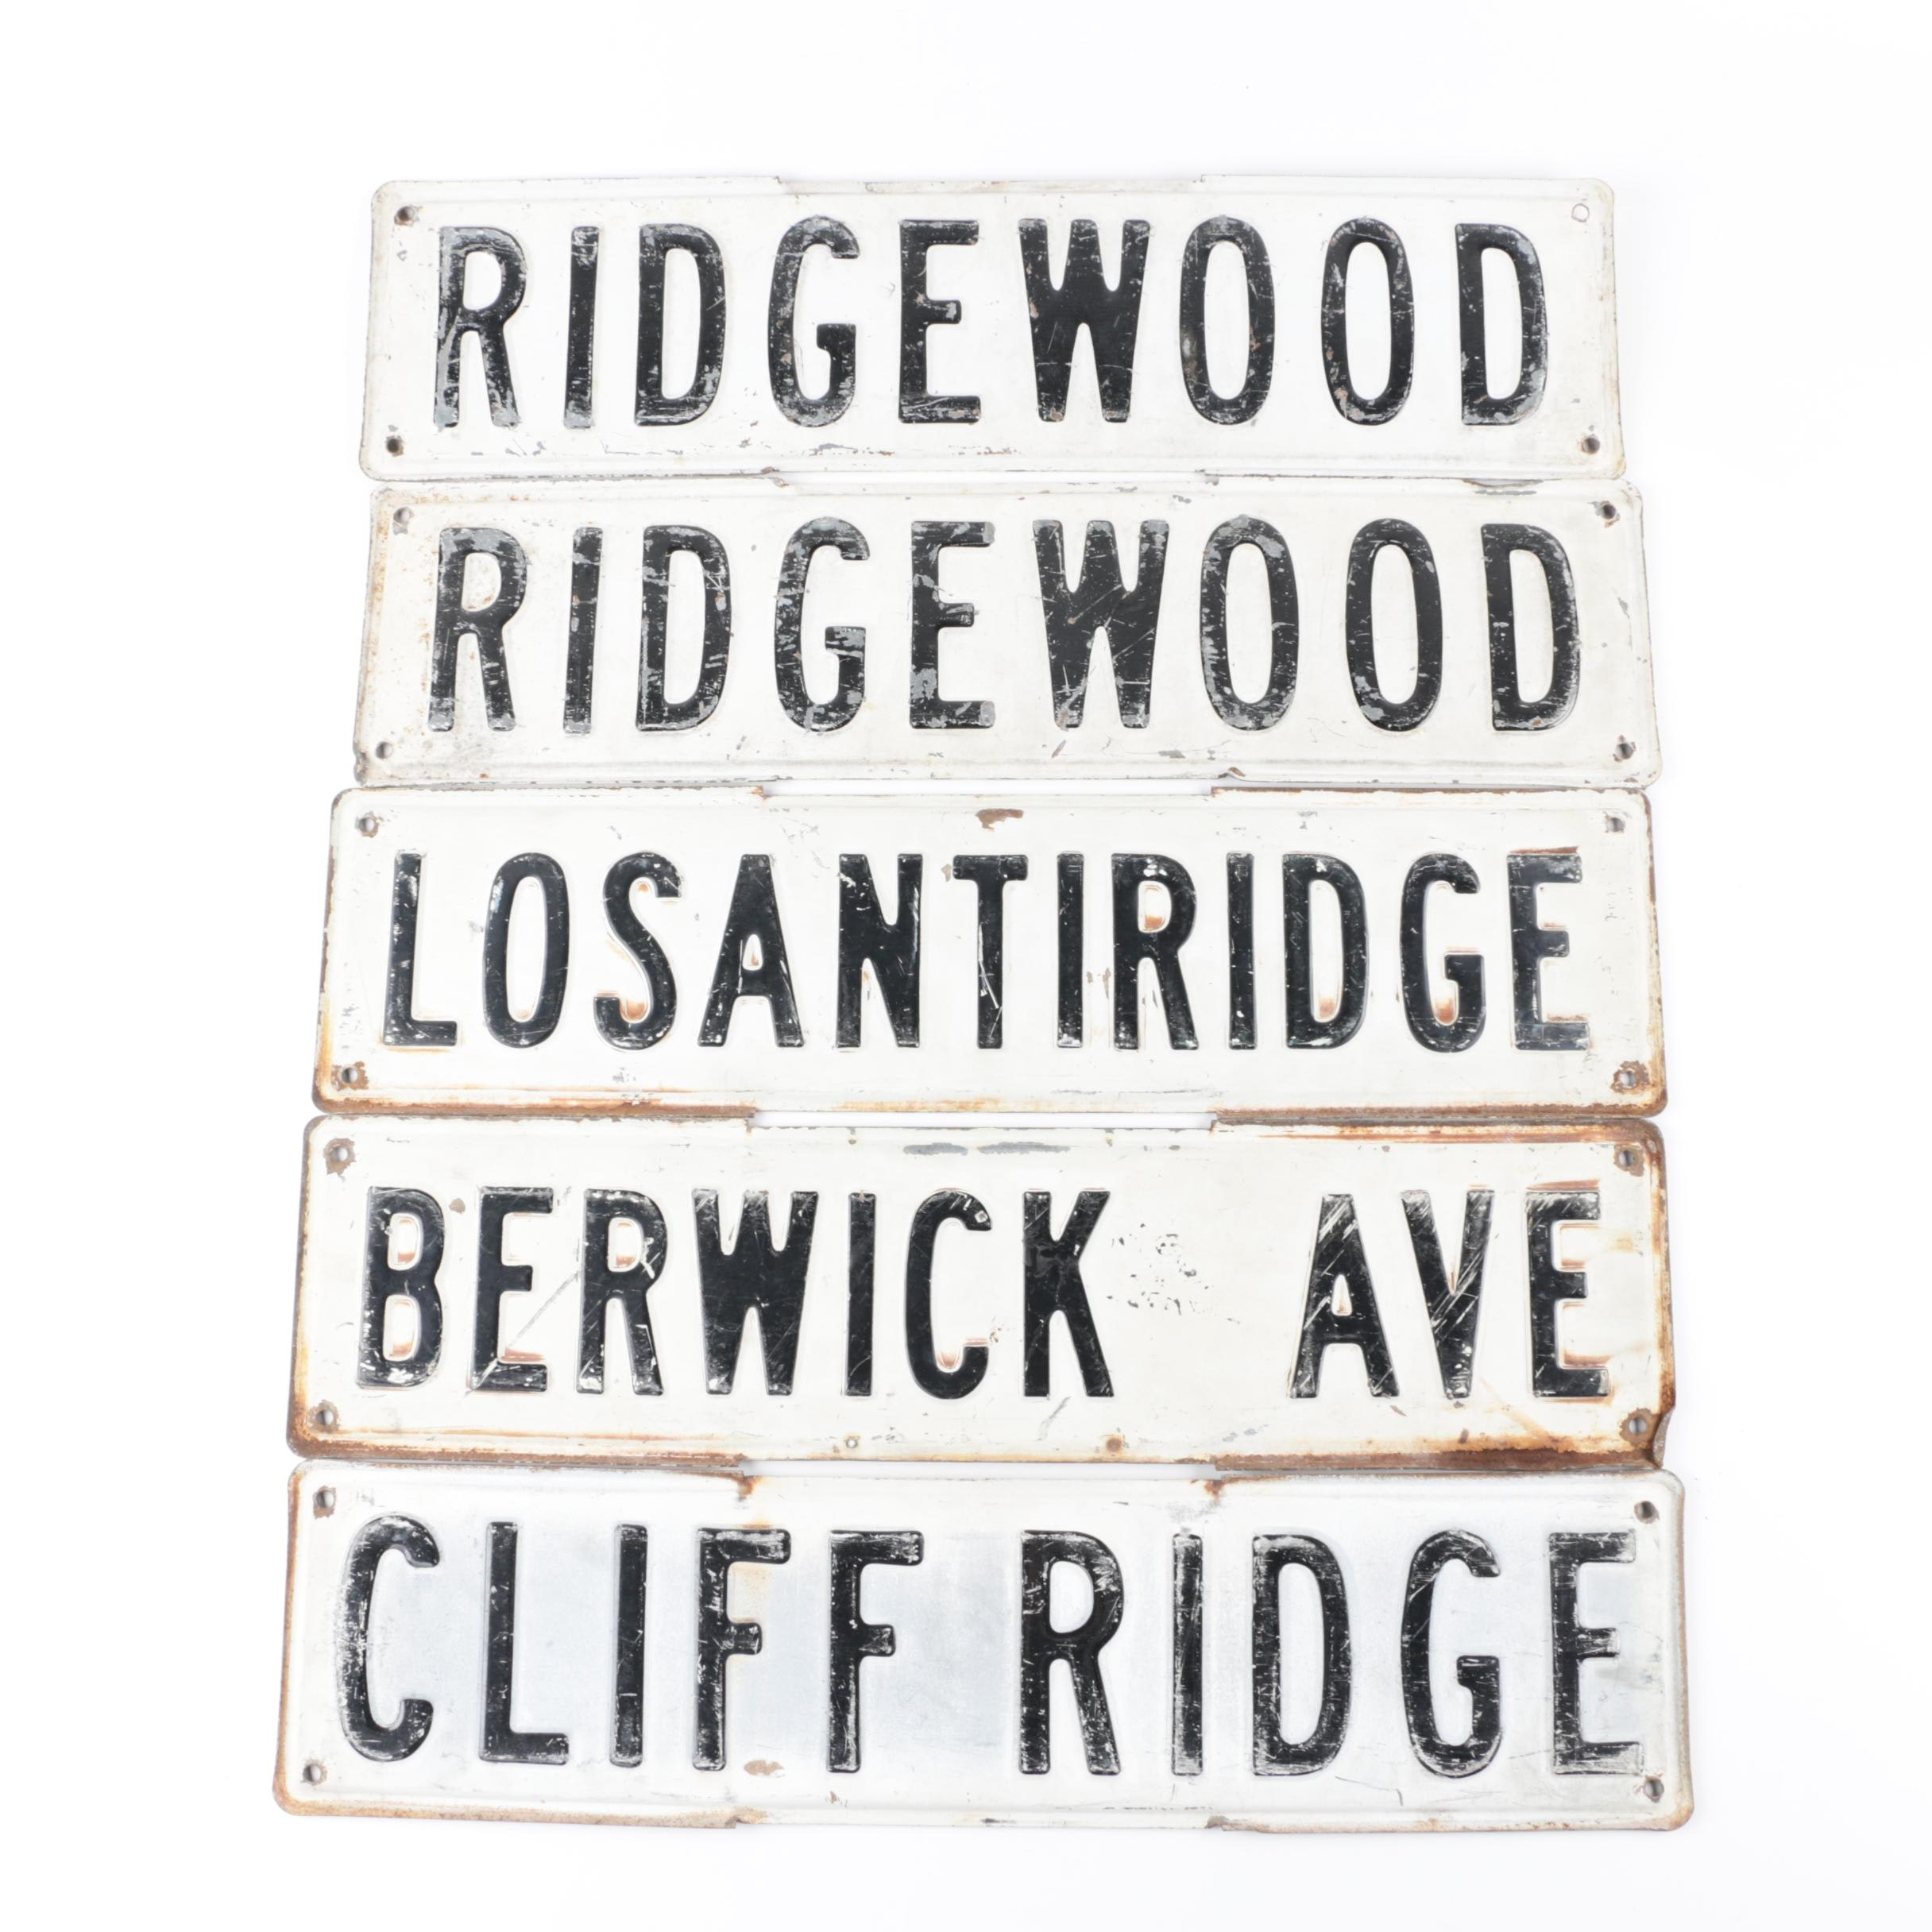 Ridgewood, Berwick Ave, and Other Street Name Signs